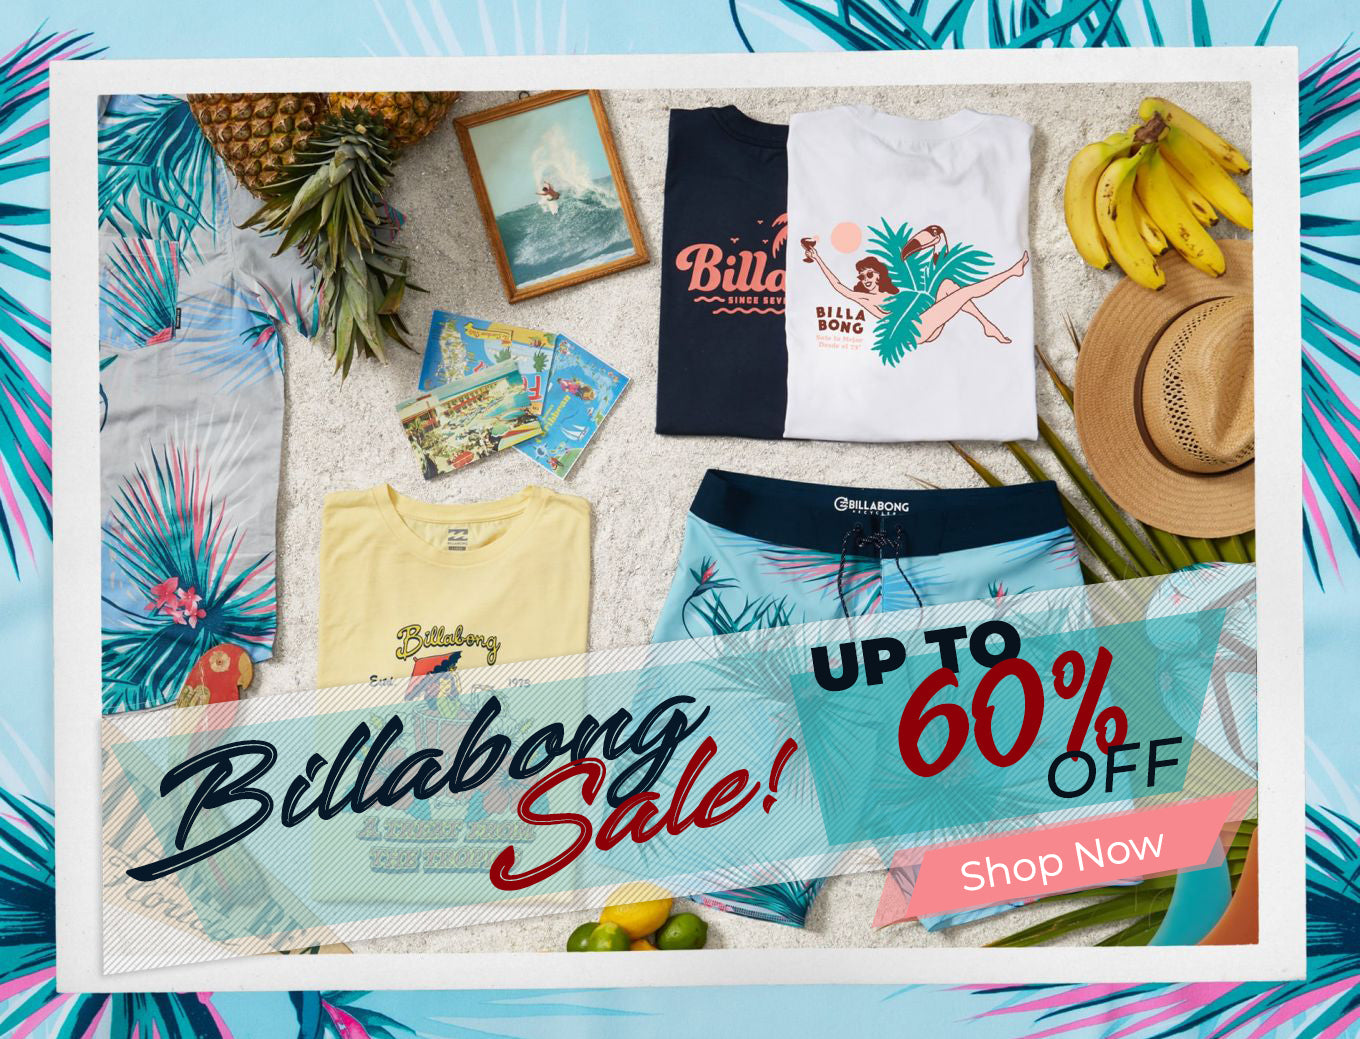 Billabong Collection On Sale Up to 60% OFF